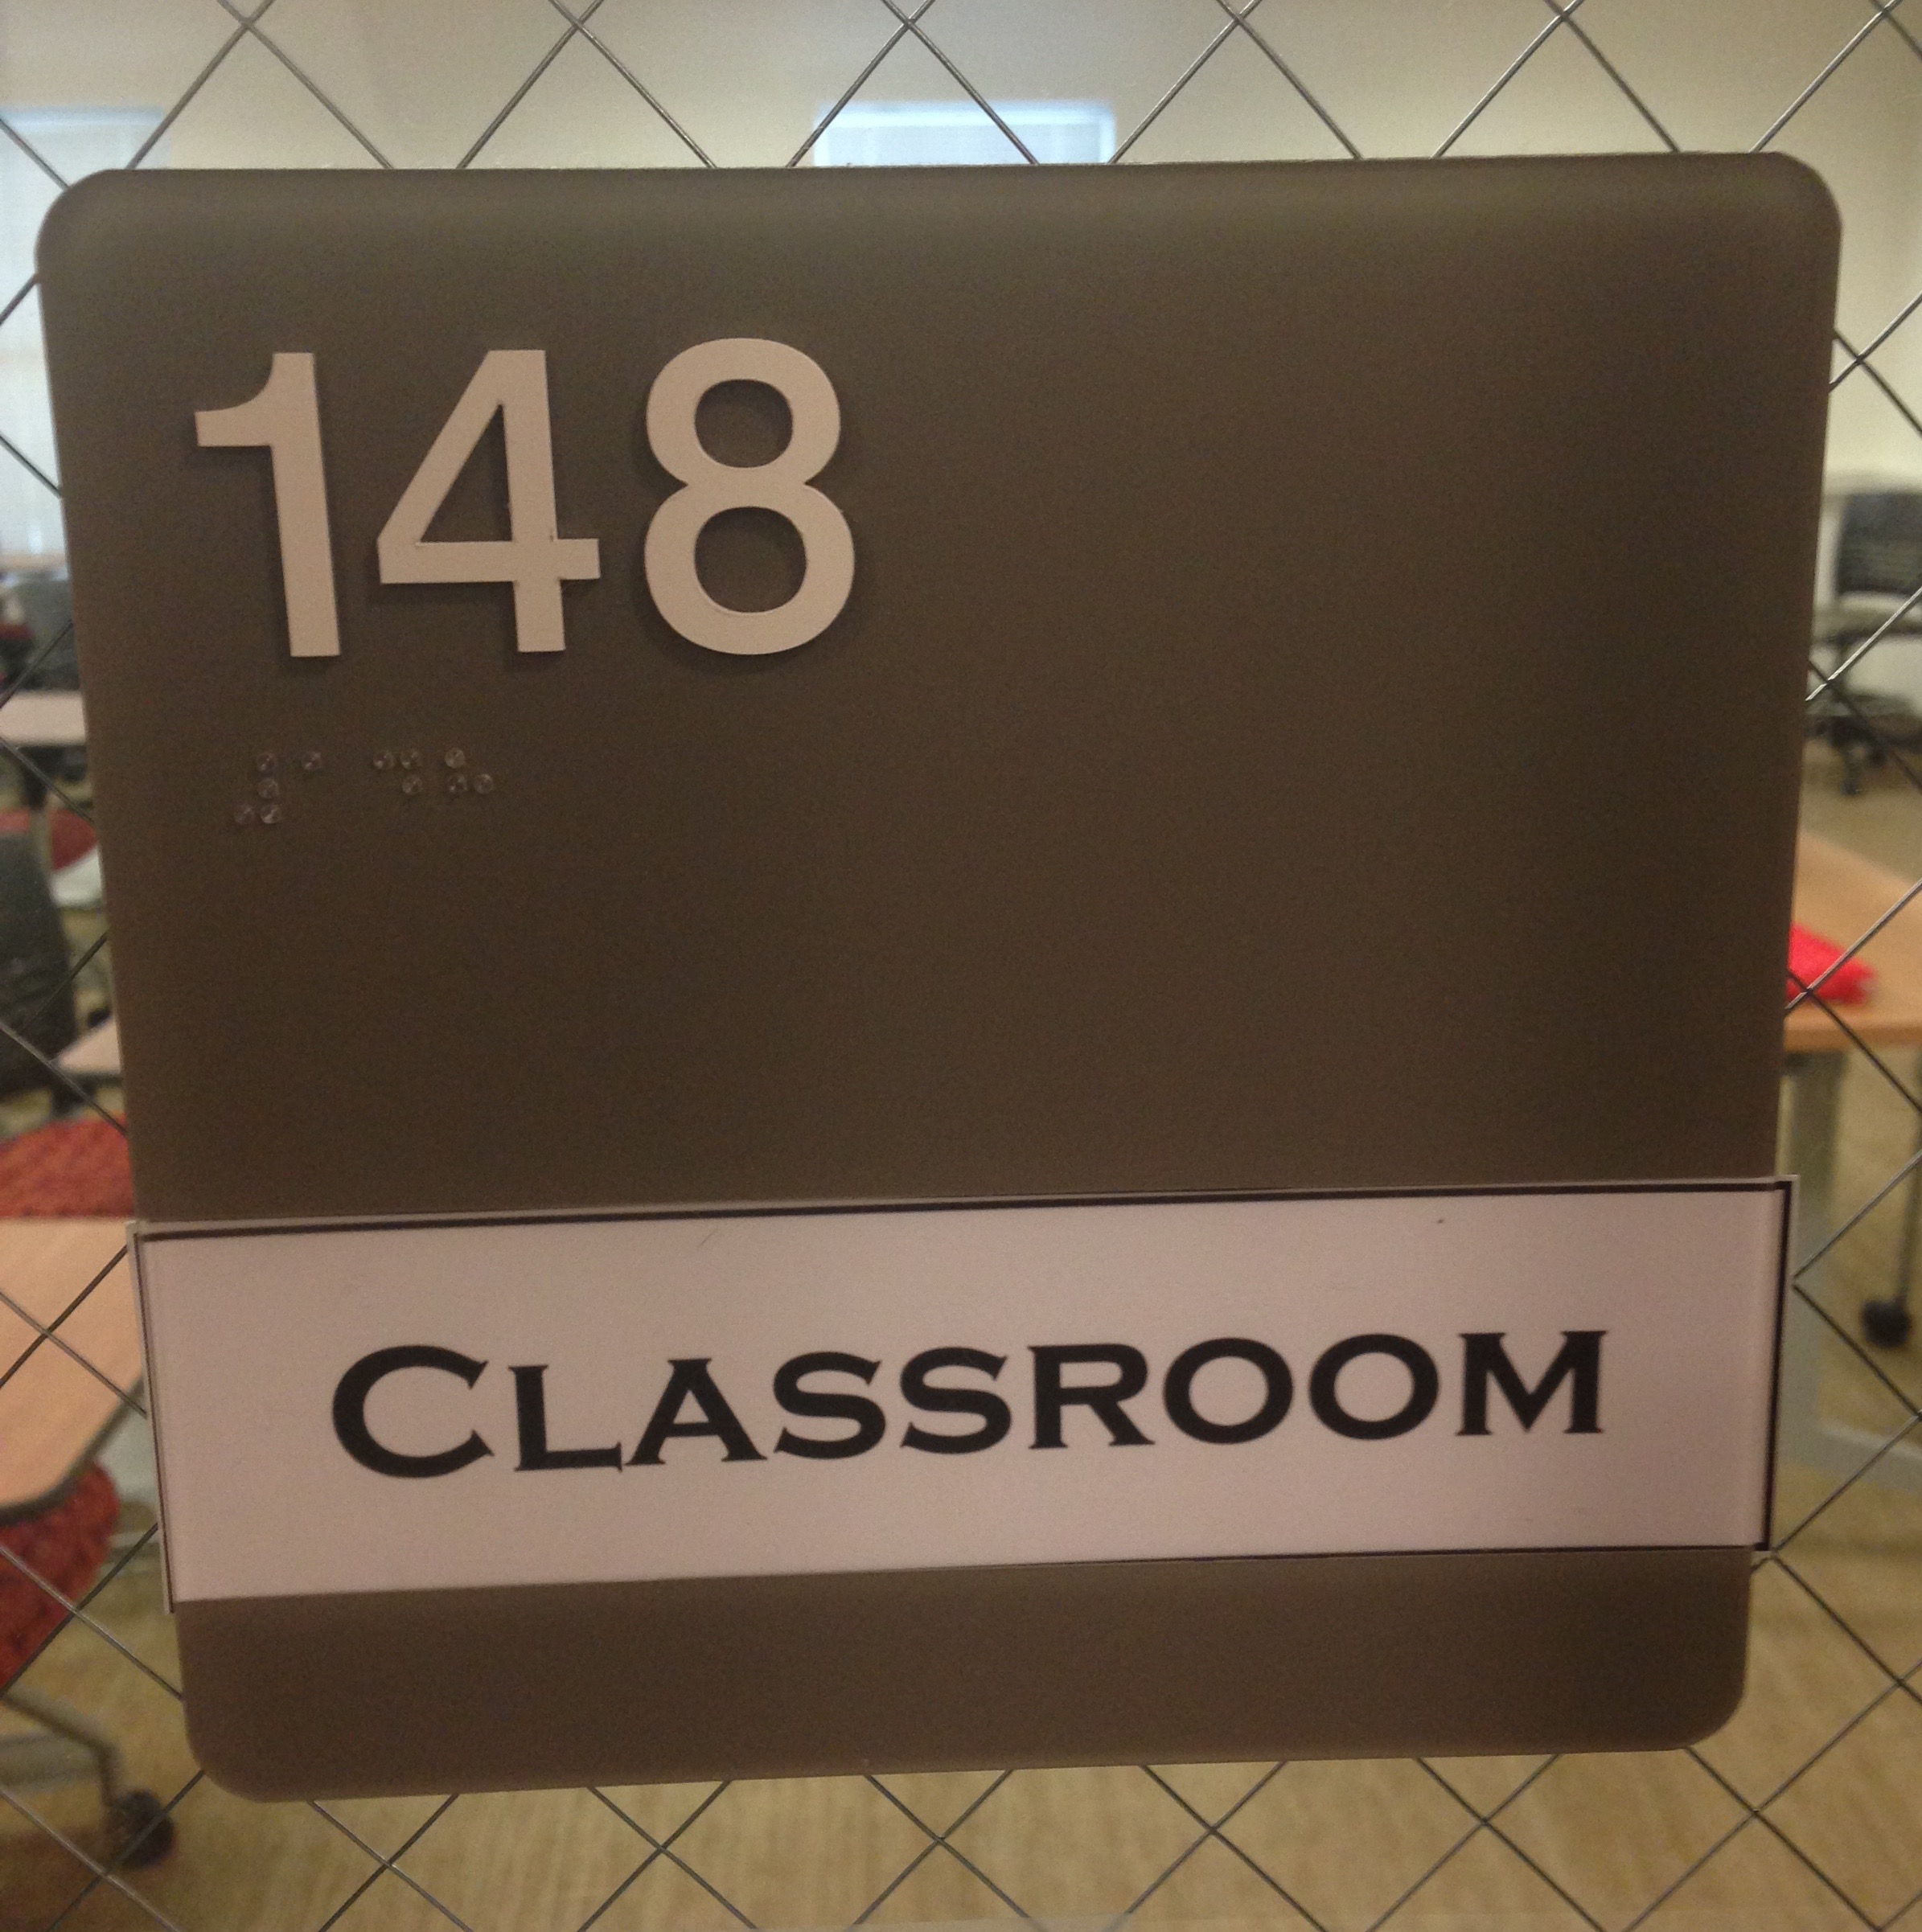 A picture of the sign for room #148.